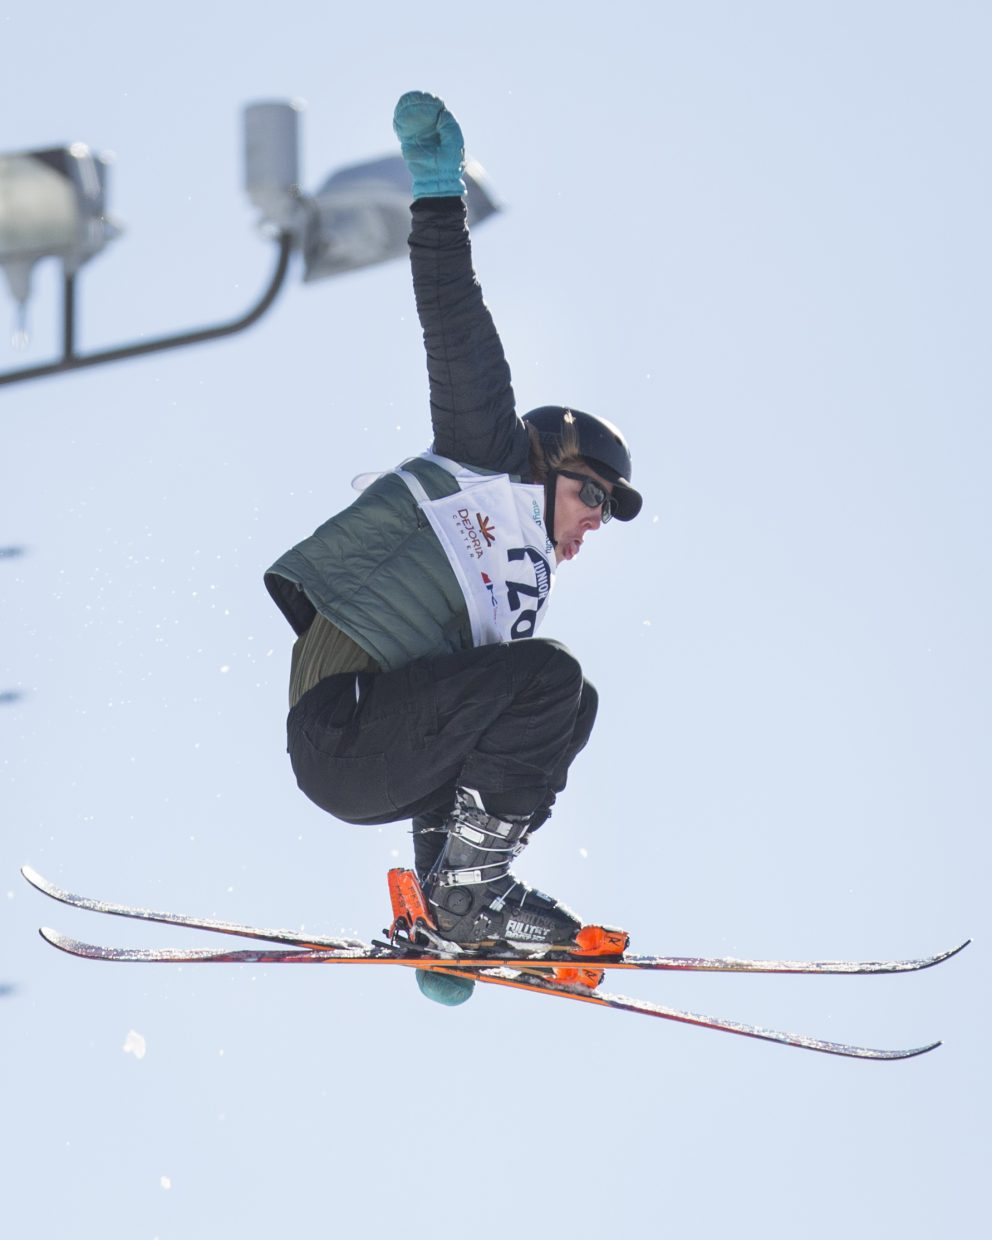 Reagan Wallis competes in the finals round of the Freestyle and Freeskiing Junior National Big Air competition at the Utah Olympic Park Saturday afternoon, March 10, 2018. (Tanzi Propst/Park Record)